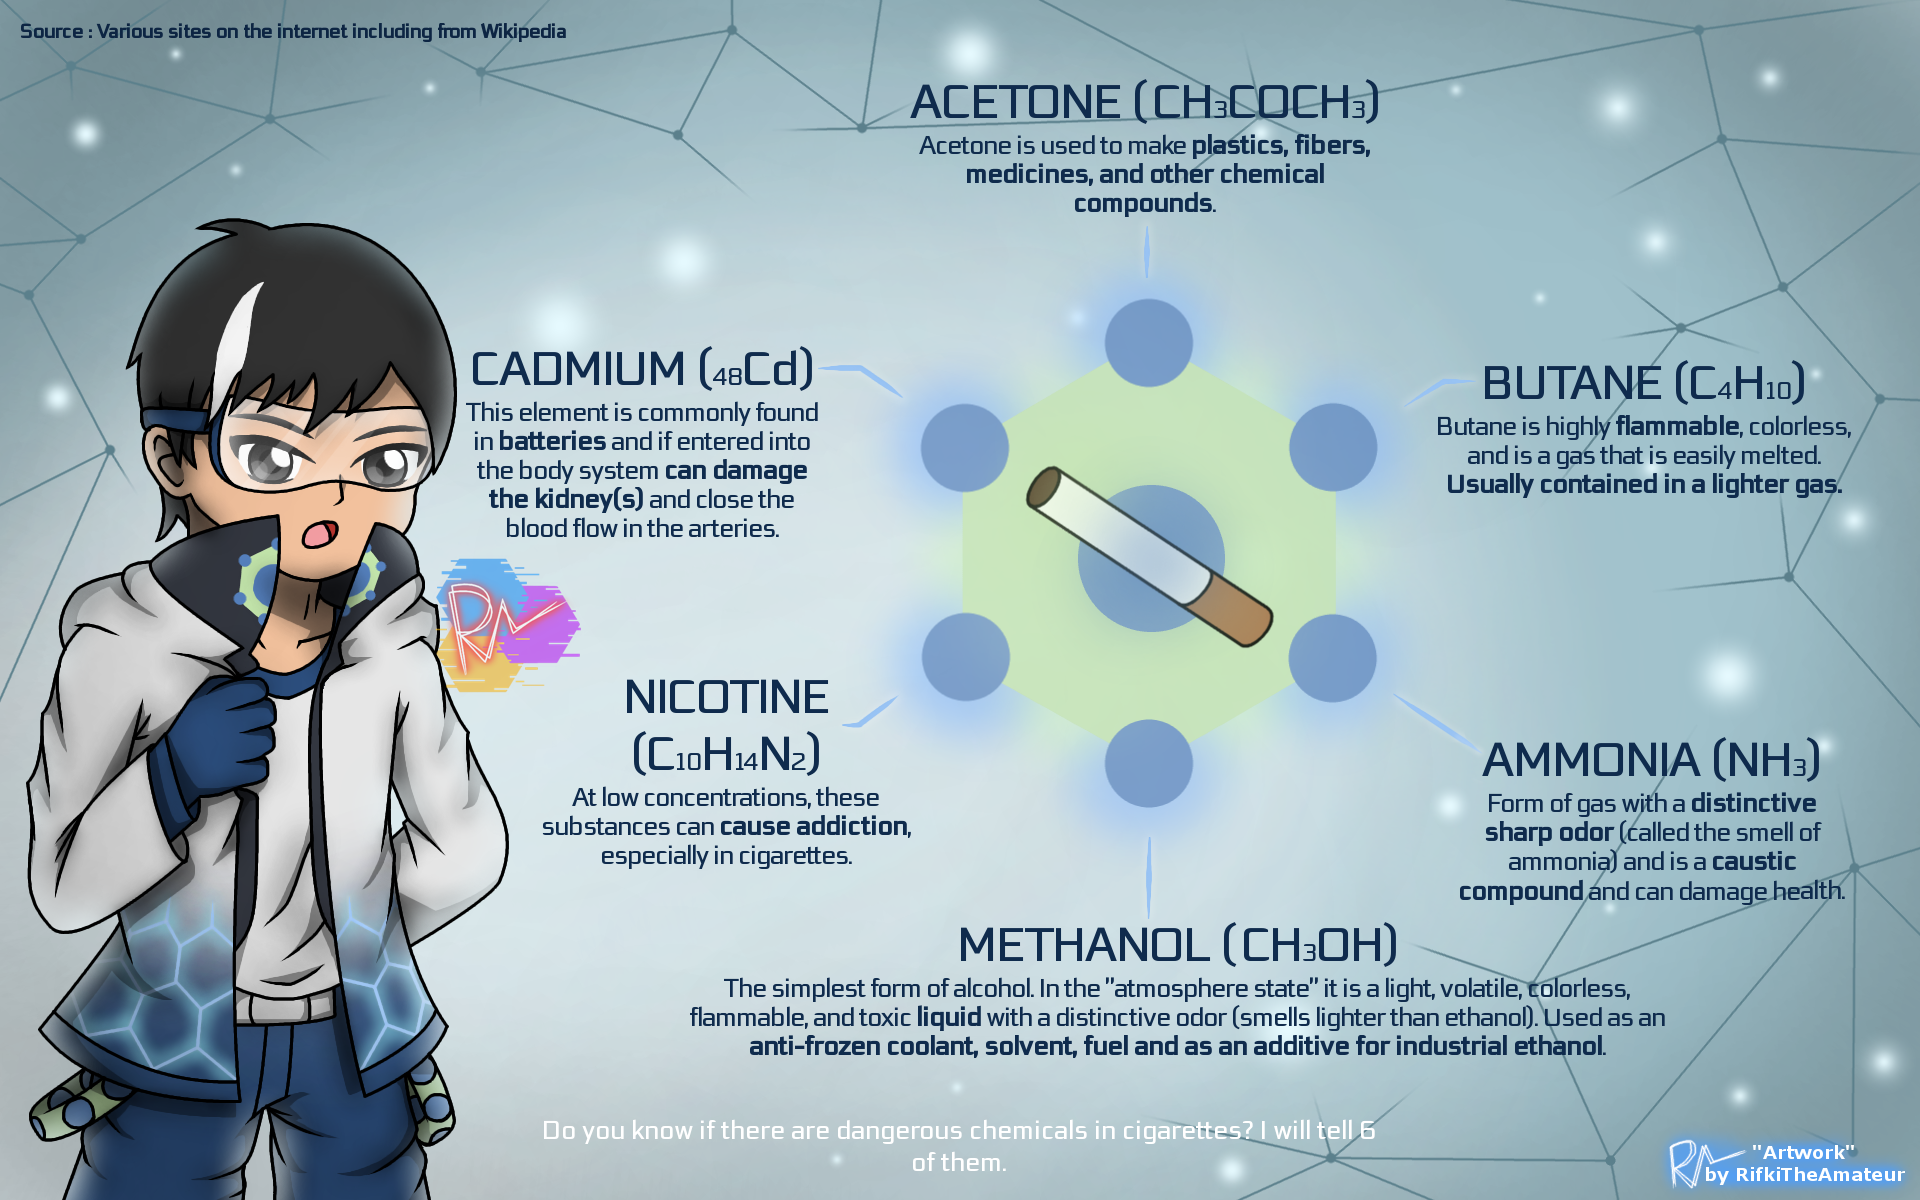 Chemical Compounds from Smoke by RifkiTheAmateur on DeviantArt